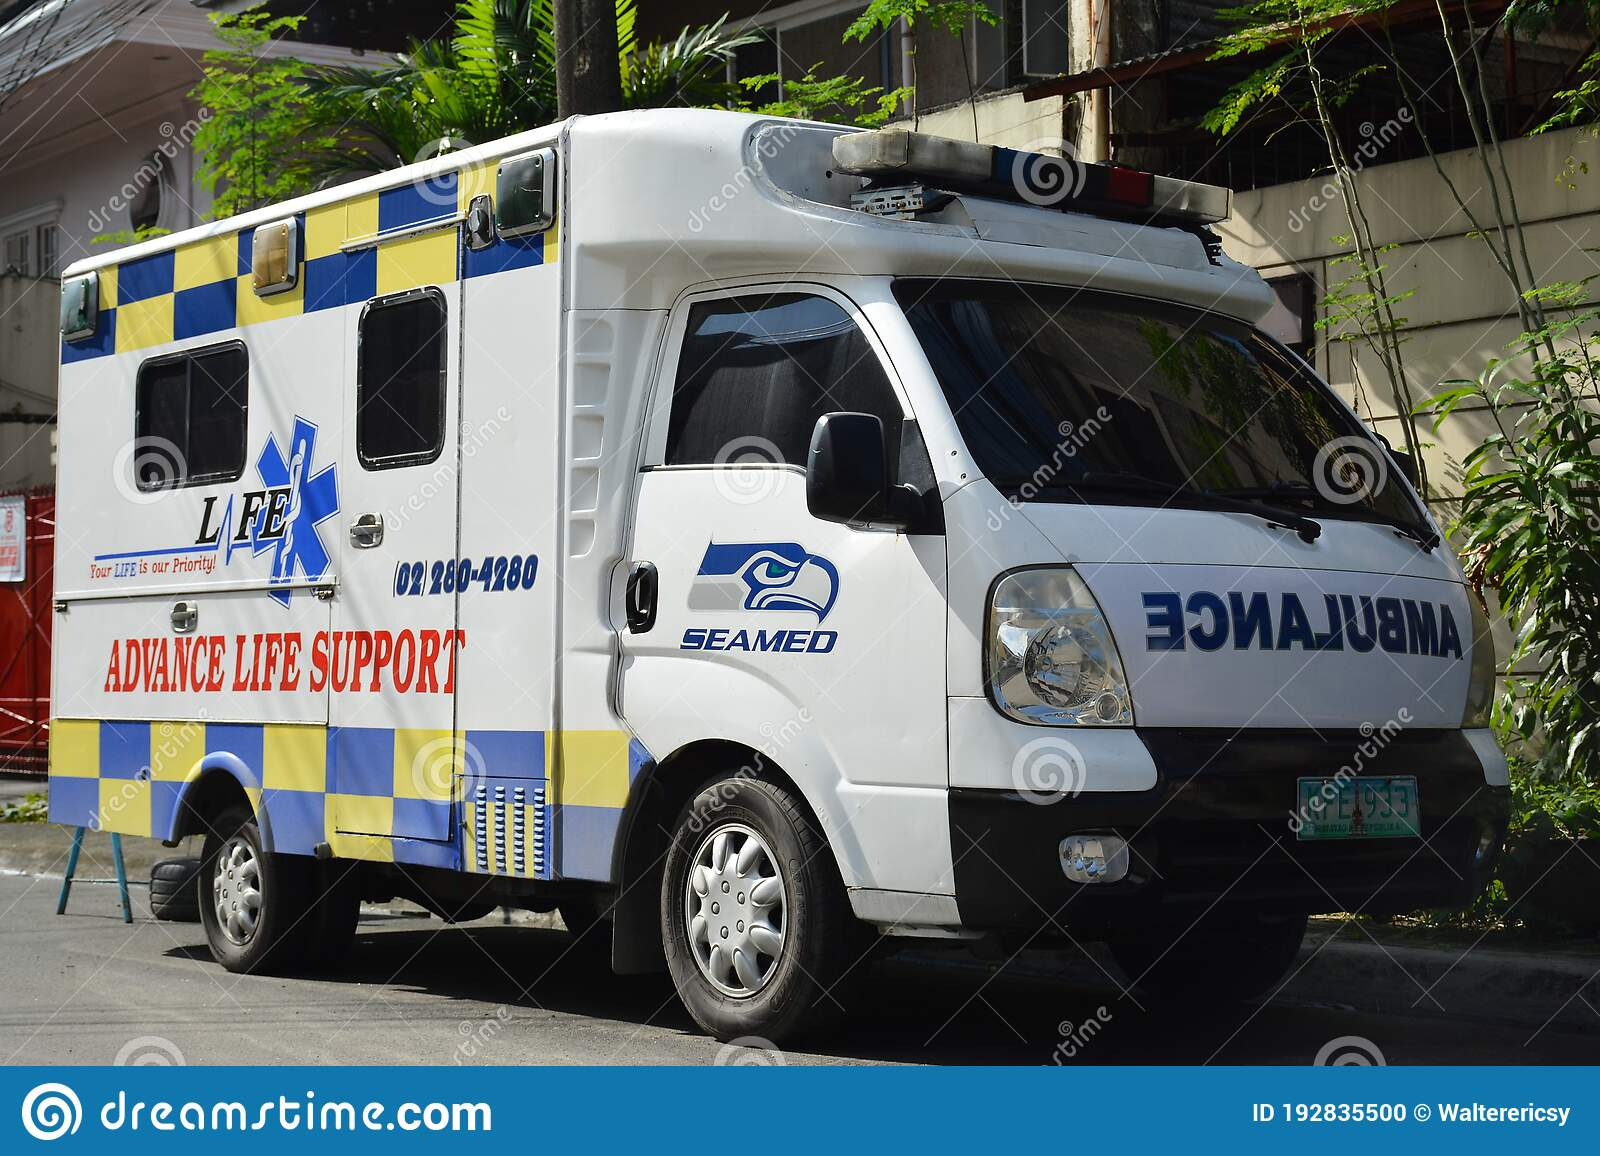 Seamed Ambulance Van In Quezon City Philippines Editorial Image Image Of Destination Vehicle 192835500